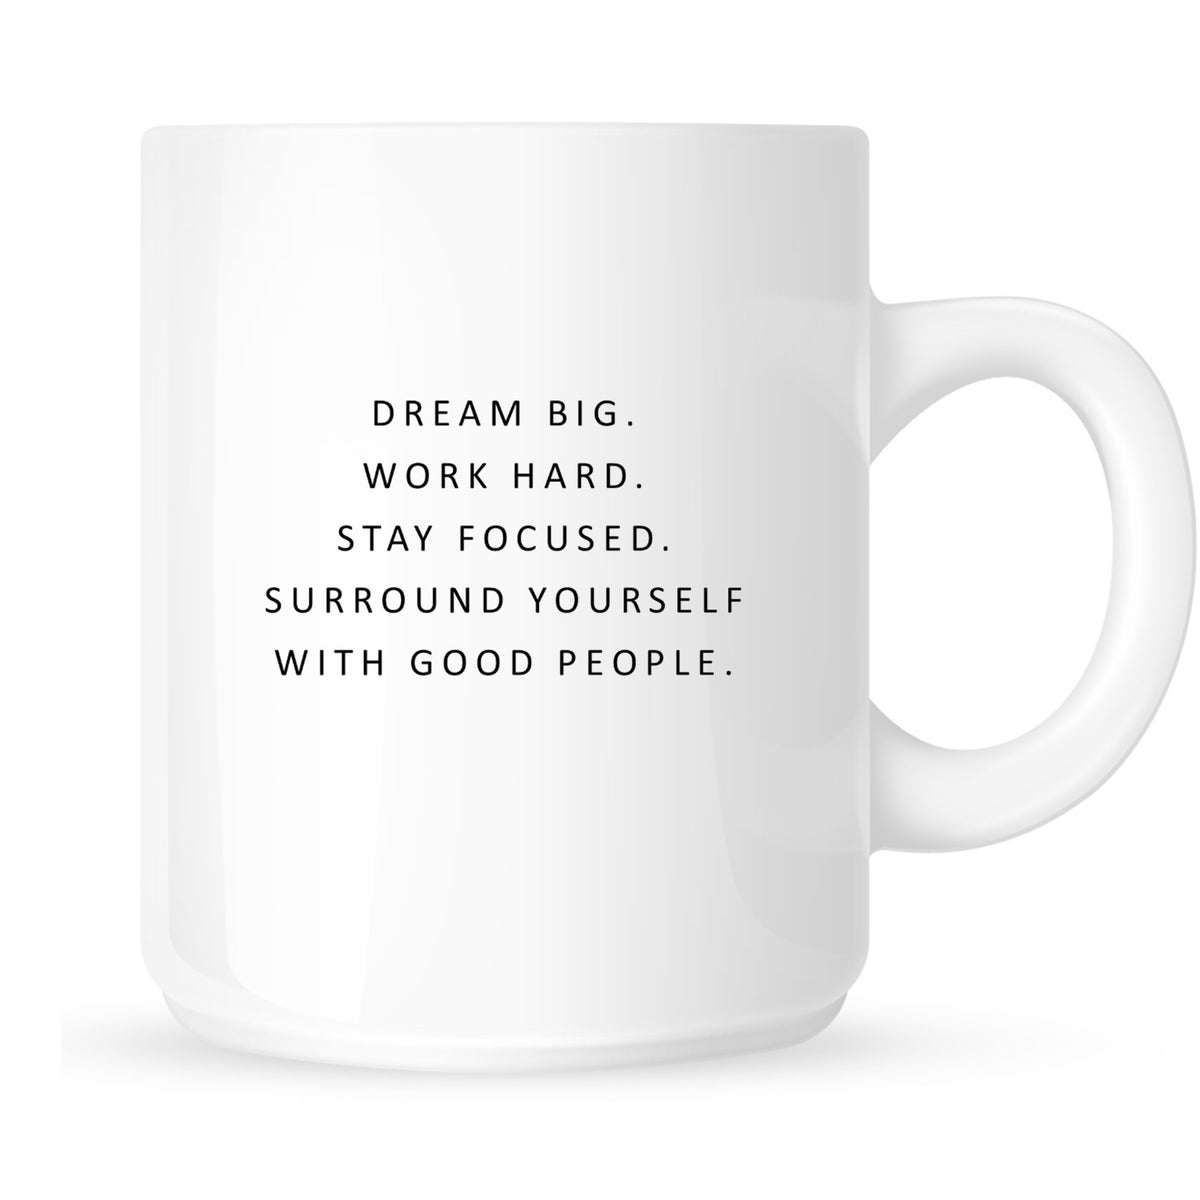 Mug - Dream Big, Work Hard, Stay Focused...